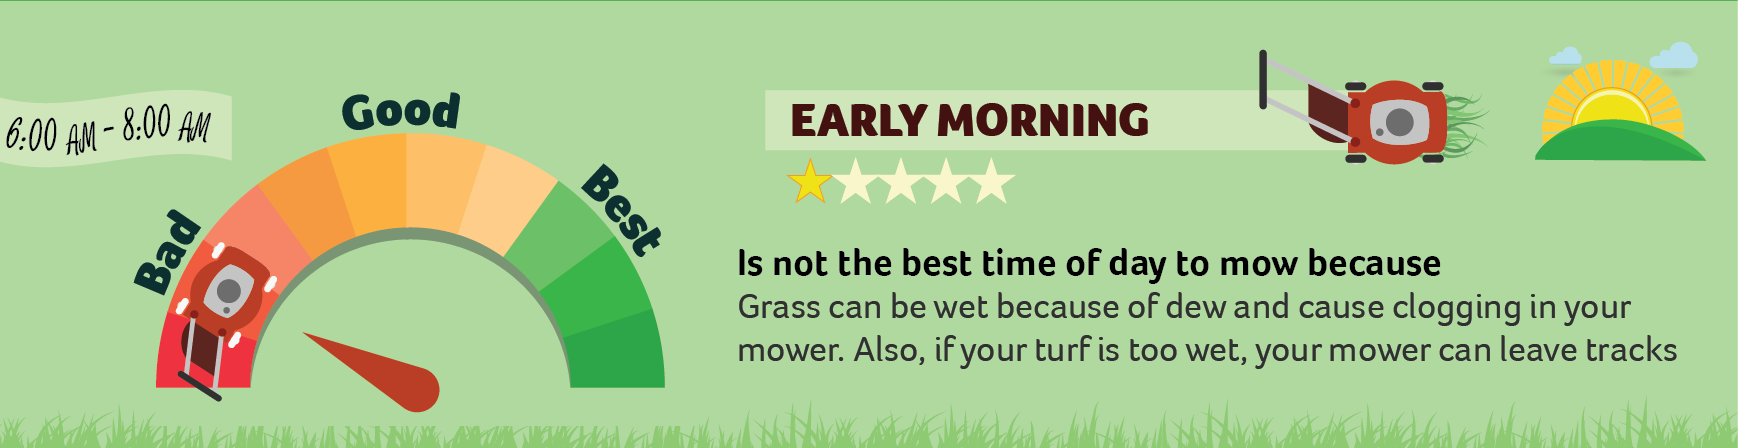 When is the best time of day to mow my lawn? Morning? Afternoon